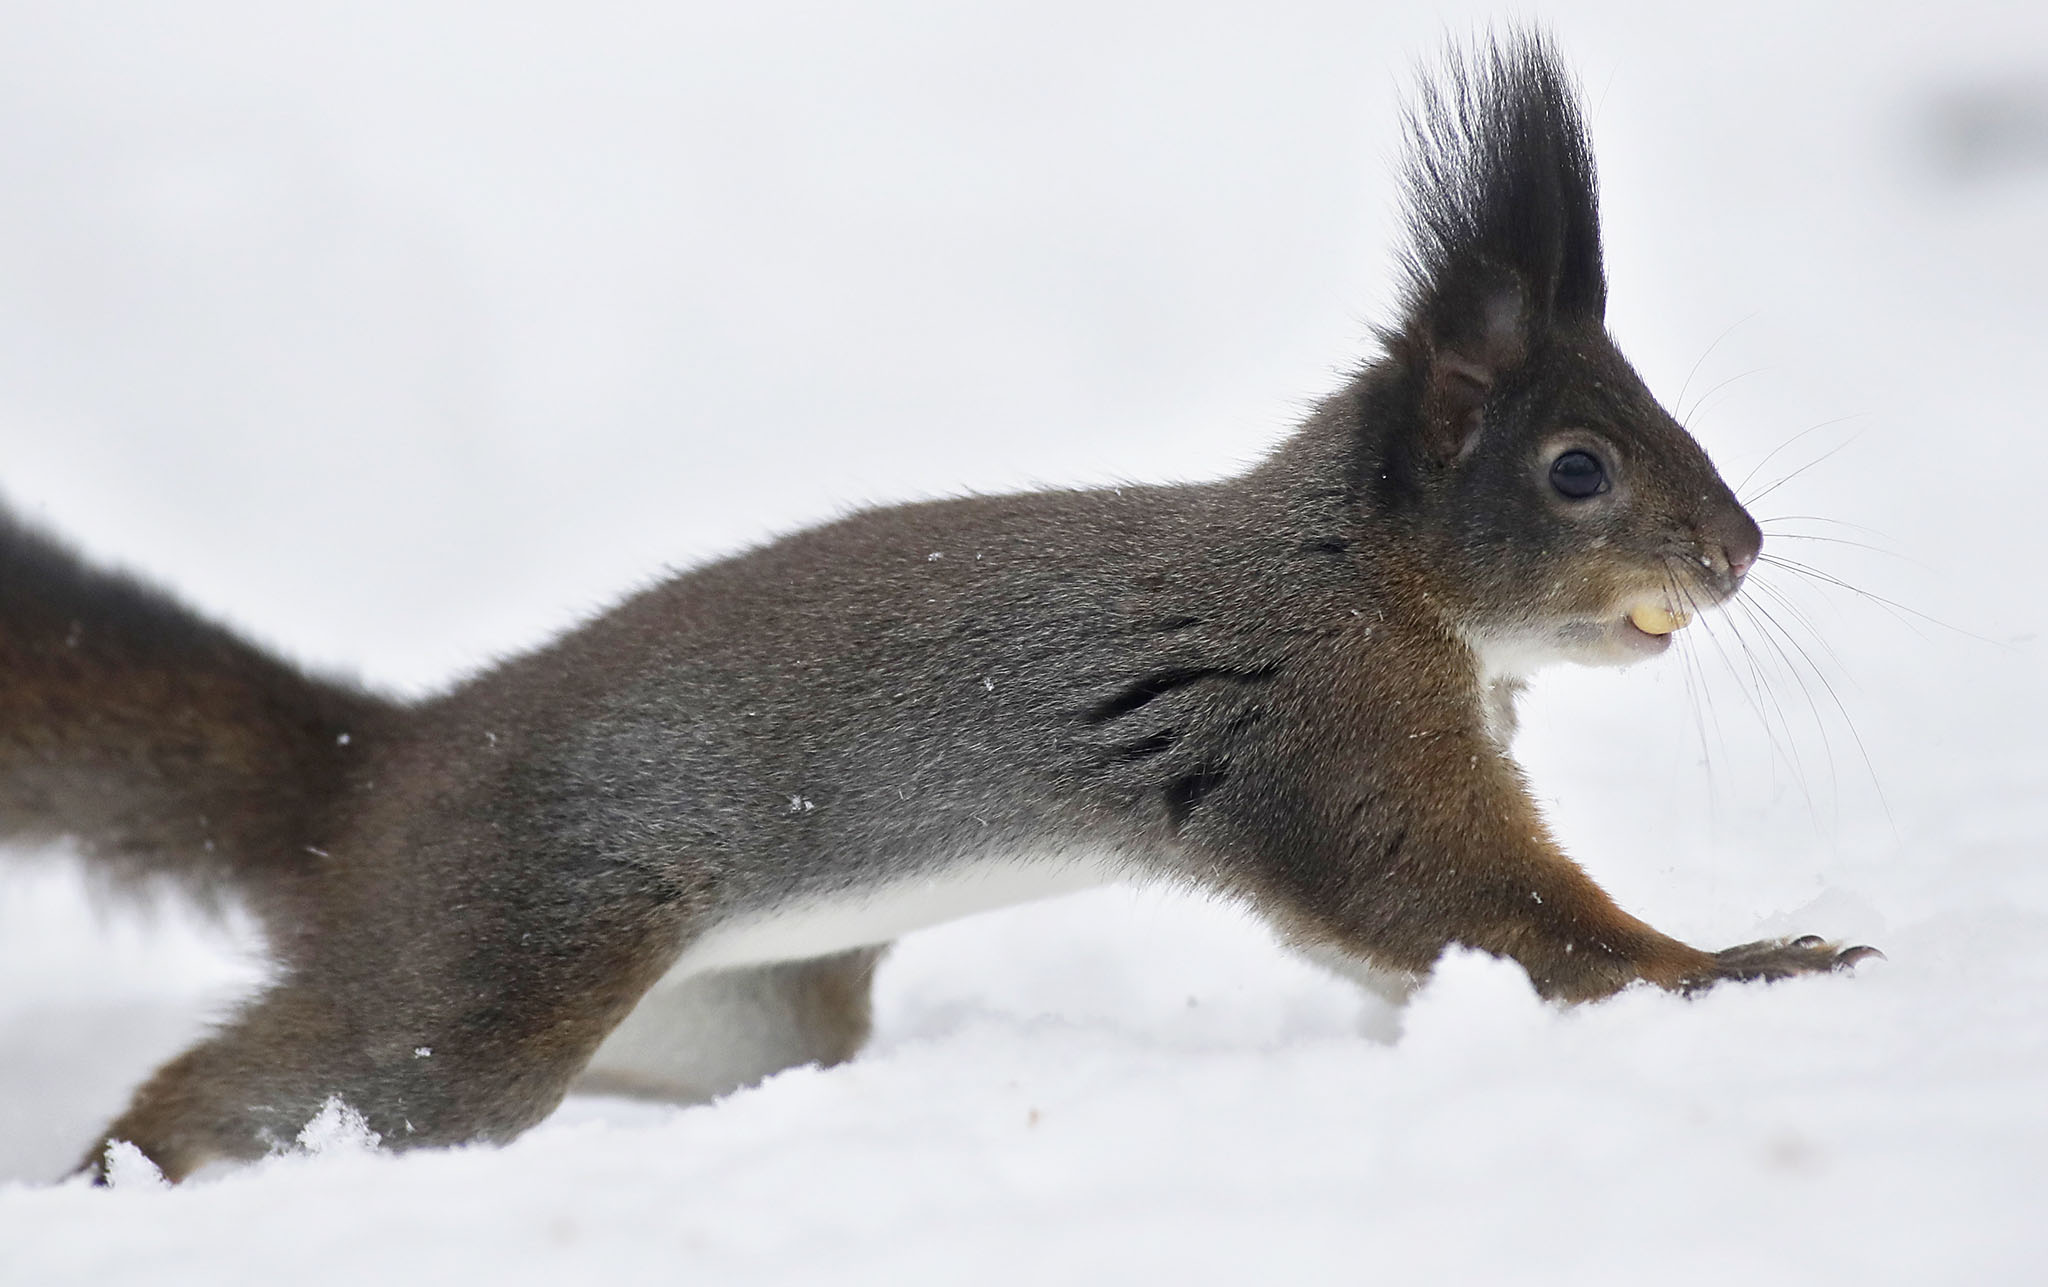 A squirrel carries a nut in a park after a heavy snowfall in Minsk, Belarus, Thursday, Nov. 10, 2016. Winter weather with snow continues to prevail in Belarus. (AP Photo/Sergei Grits)